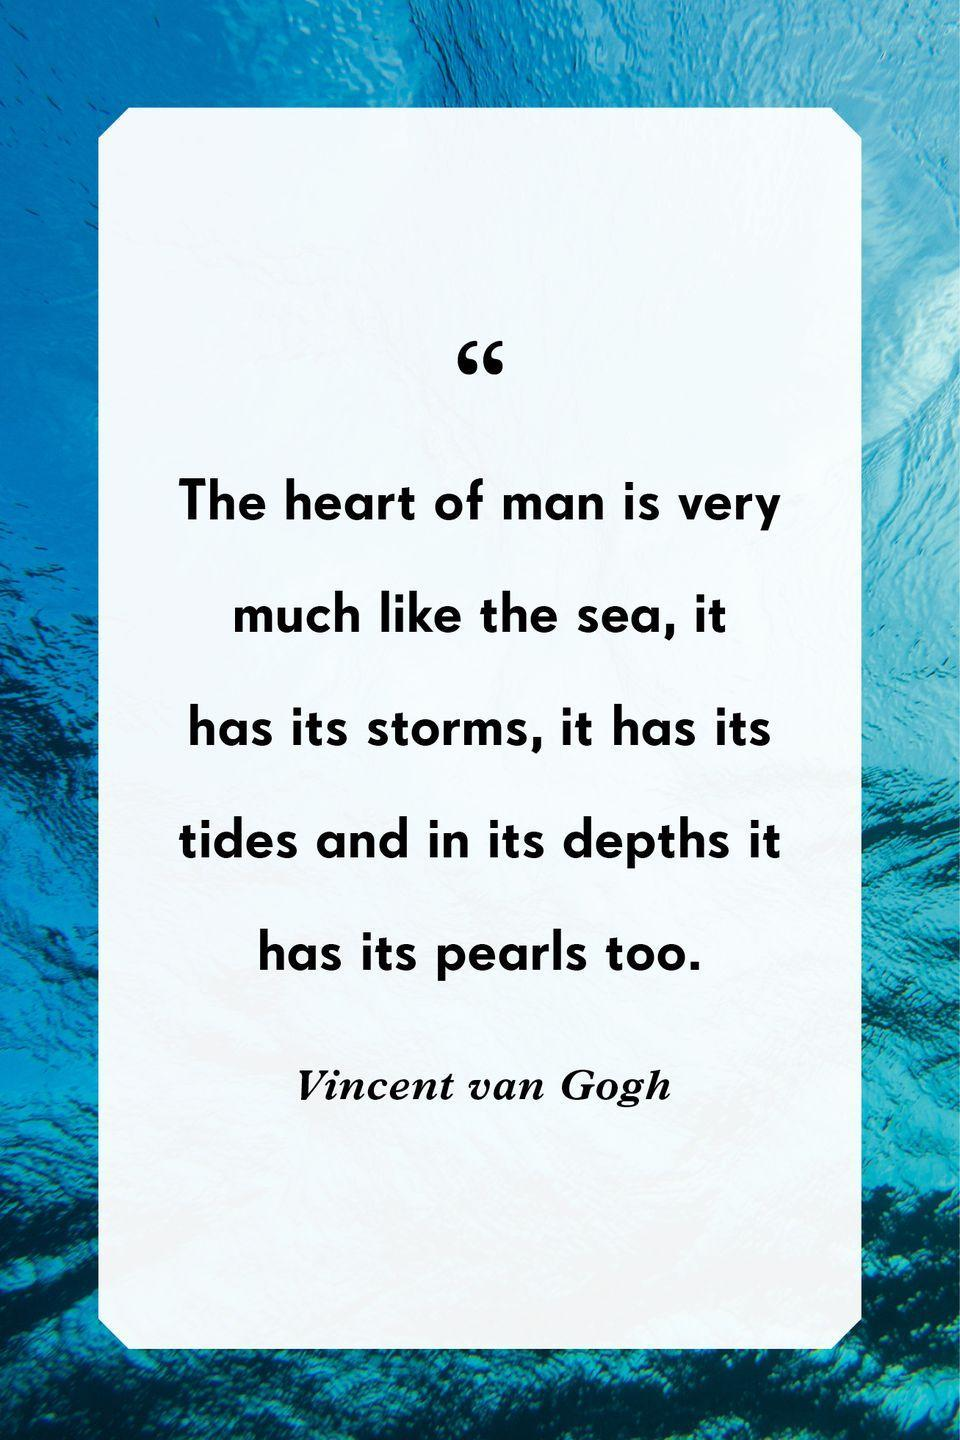 """<p>""""The heart of man is very much like the sea, it has its storms, it has its tides and in its depths it has its pearls too""""</p>"""